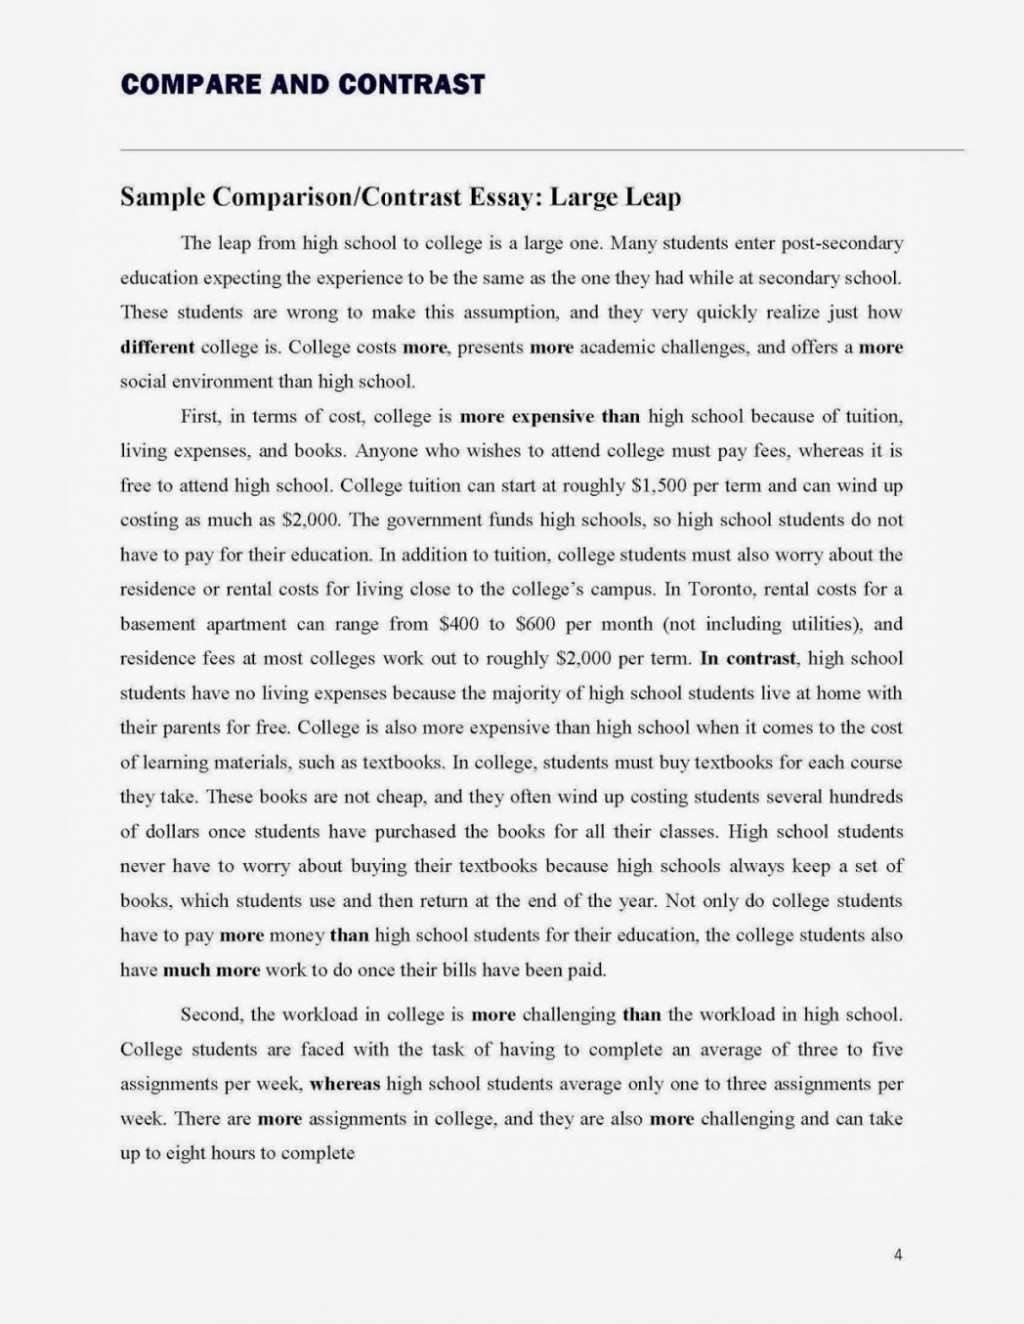 009 Essay Example Comparison And Contrast Examples College Compare That W Application Worked Striking Level Topics 9th Grade For Students Large